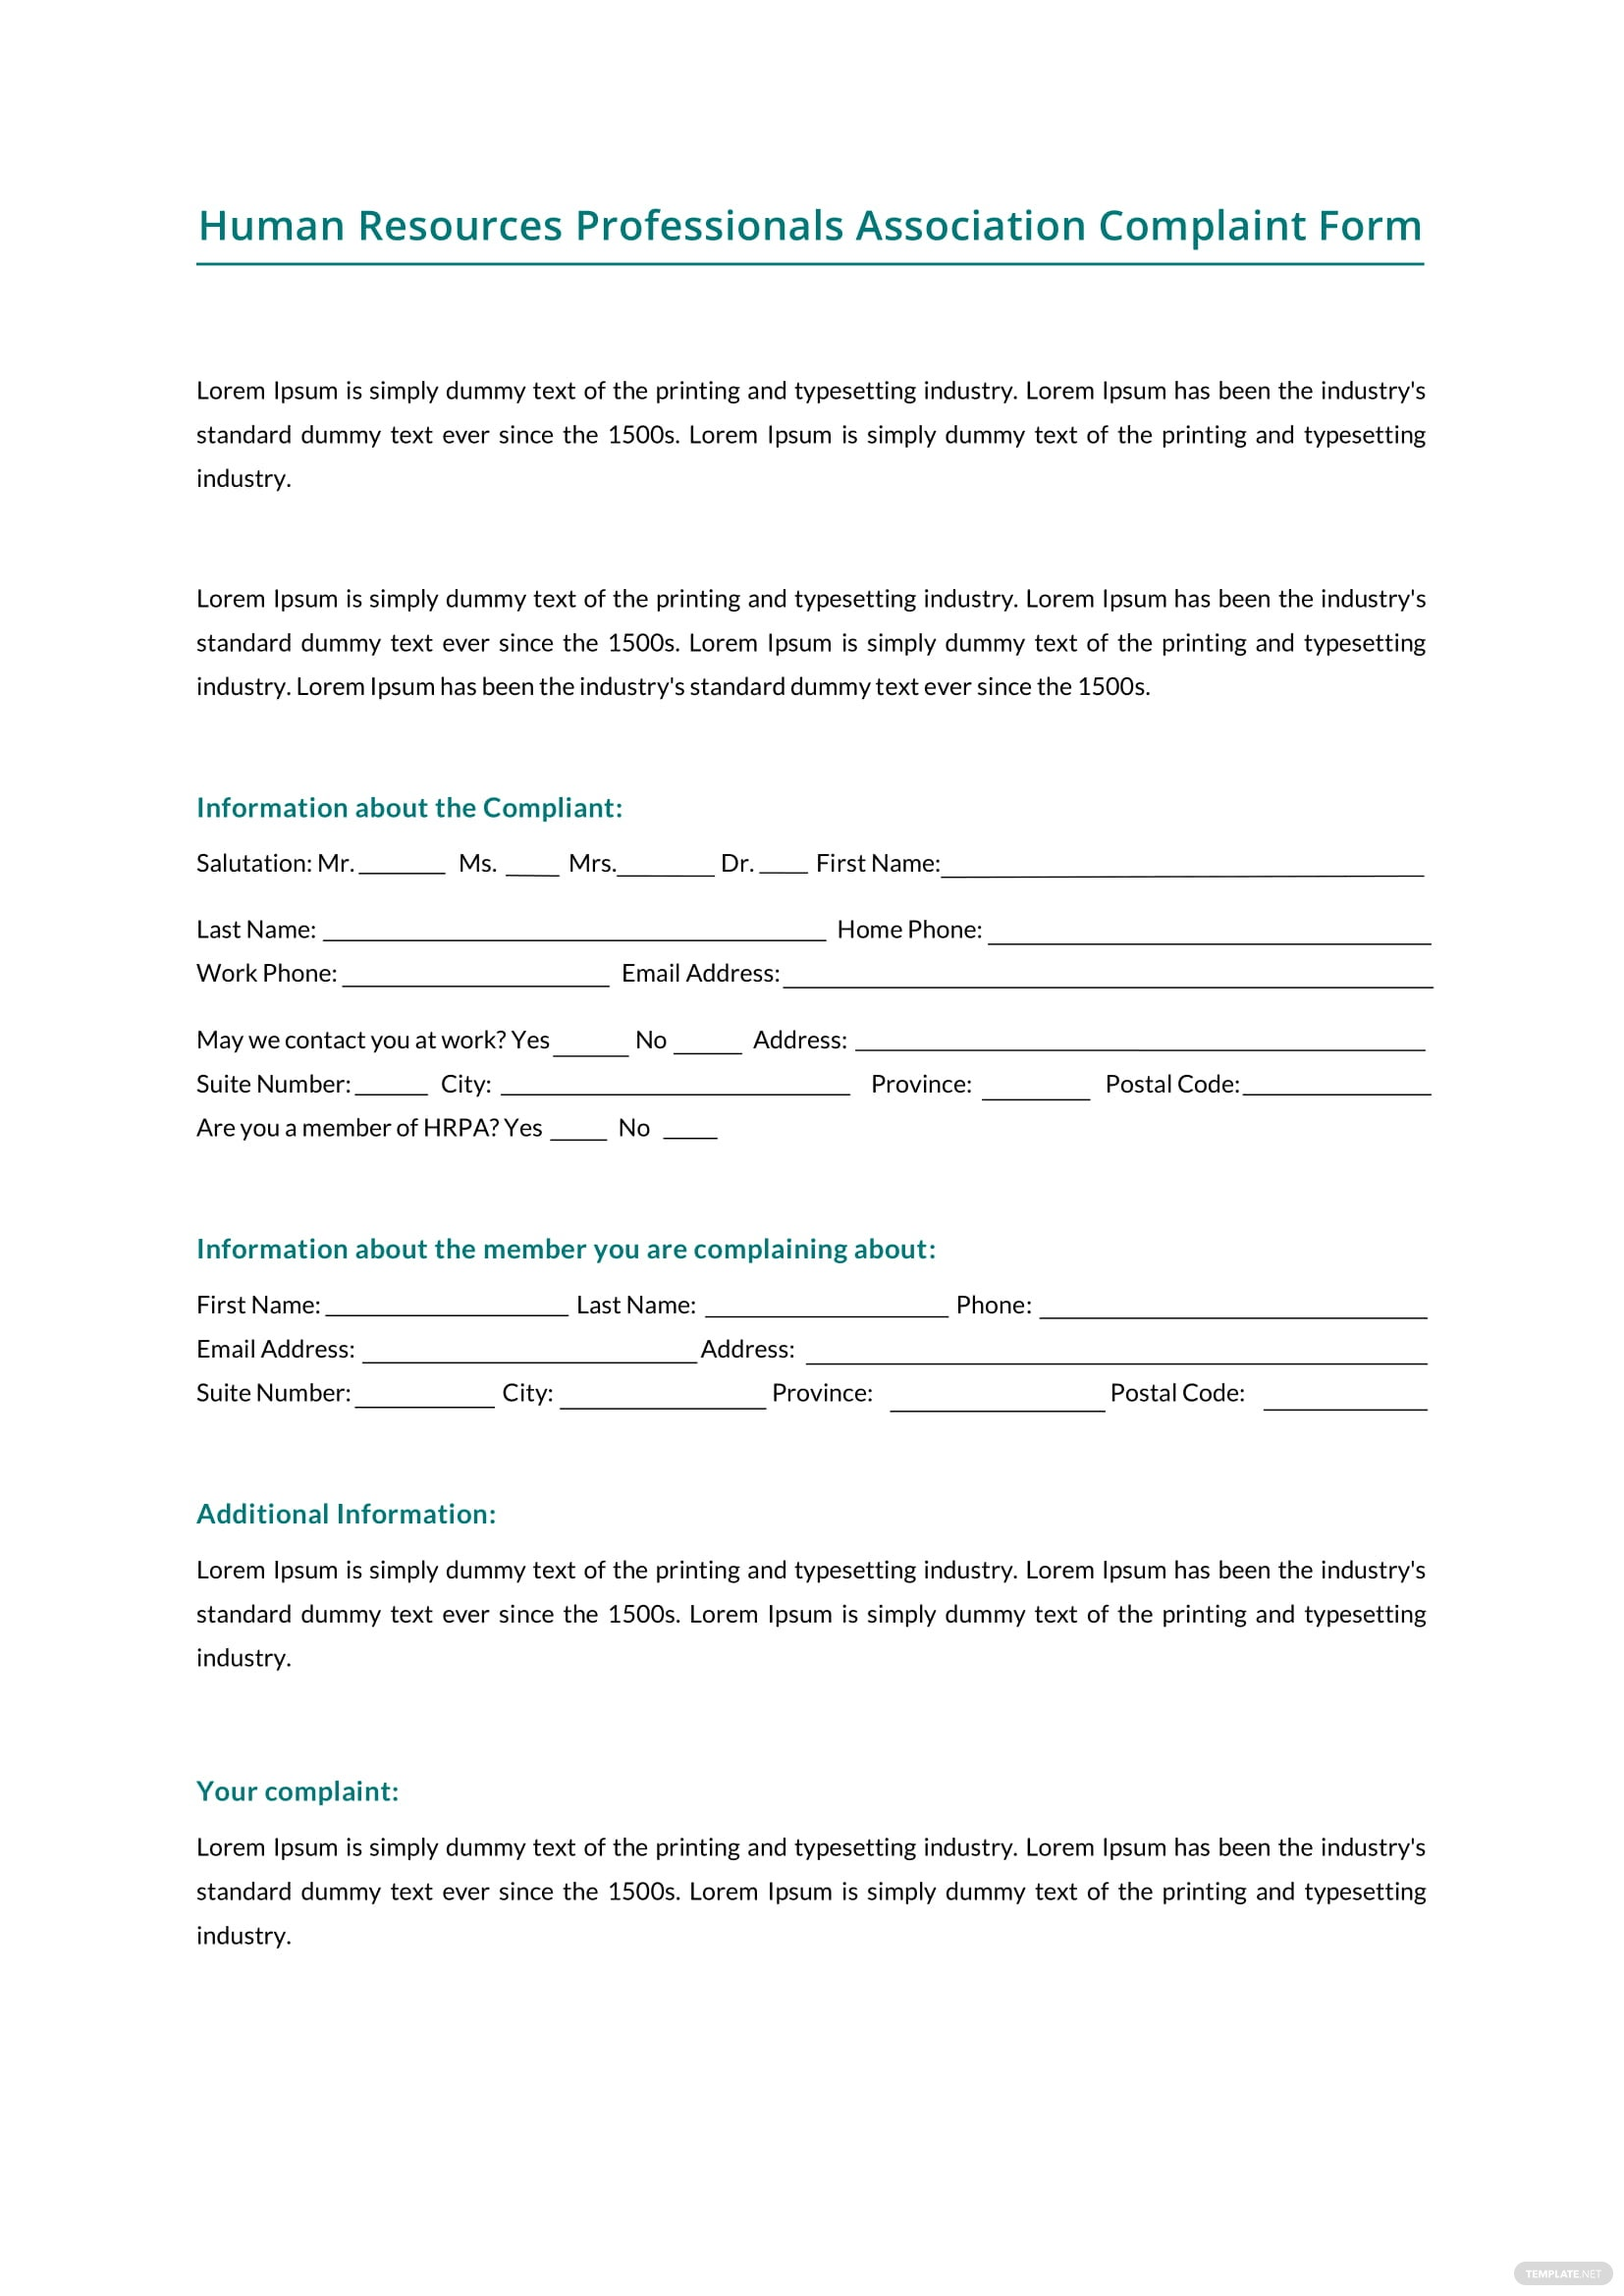 Hr professionals association complaint form template in microsoft hr professionals association complaint form thecheapjerseys Image collections